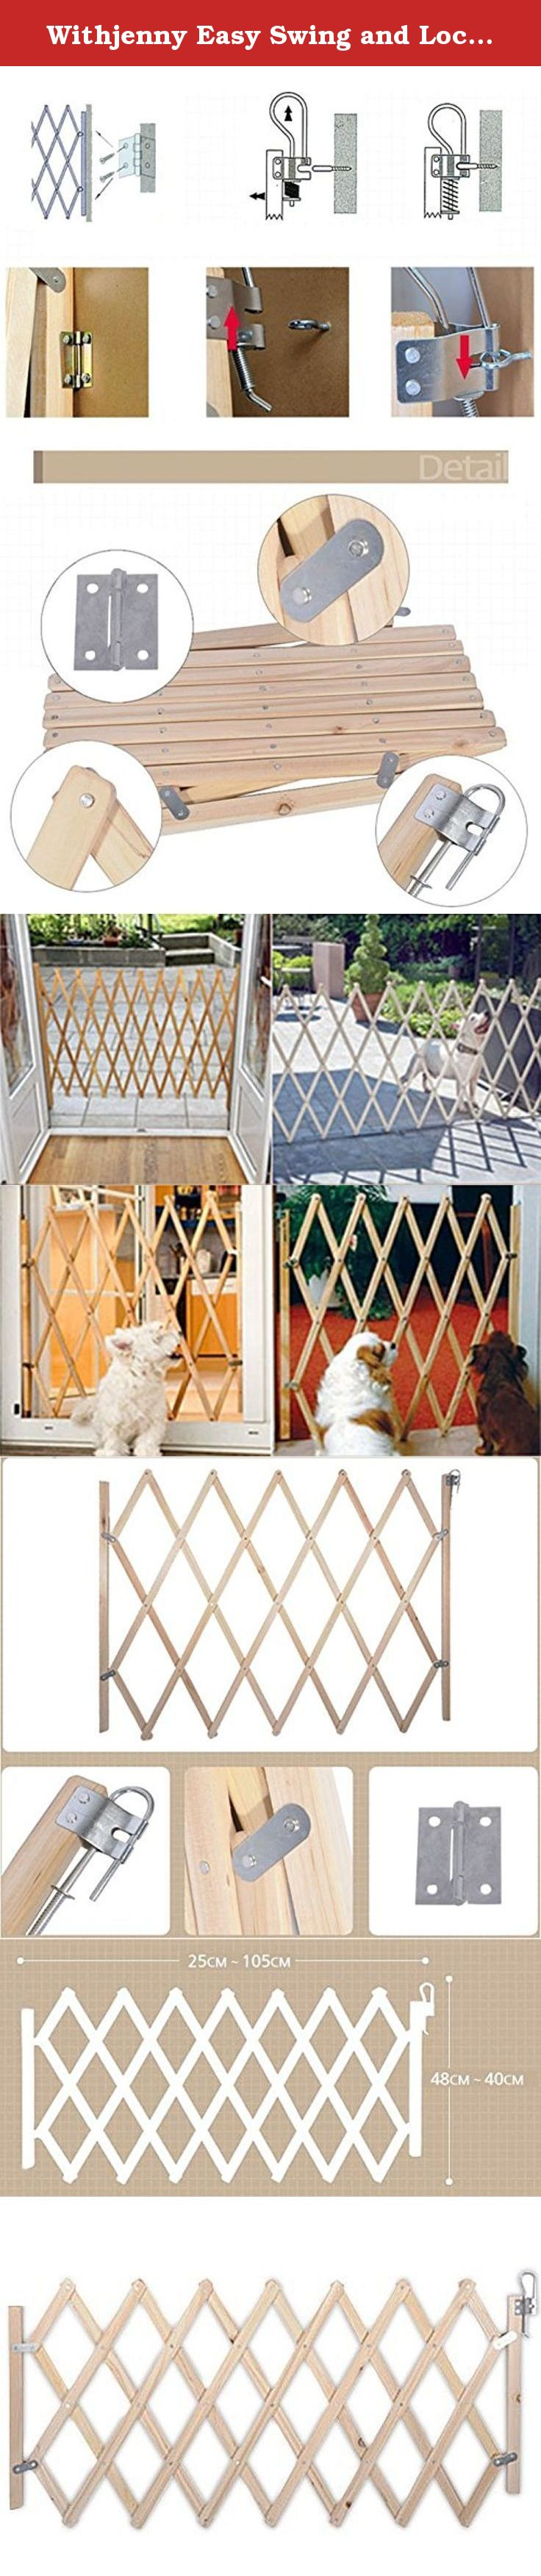 Withjenny Easy Swing and Lock Wood Gate (Small). Enjoy the